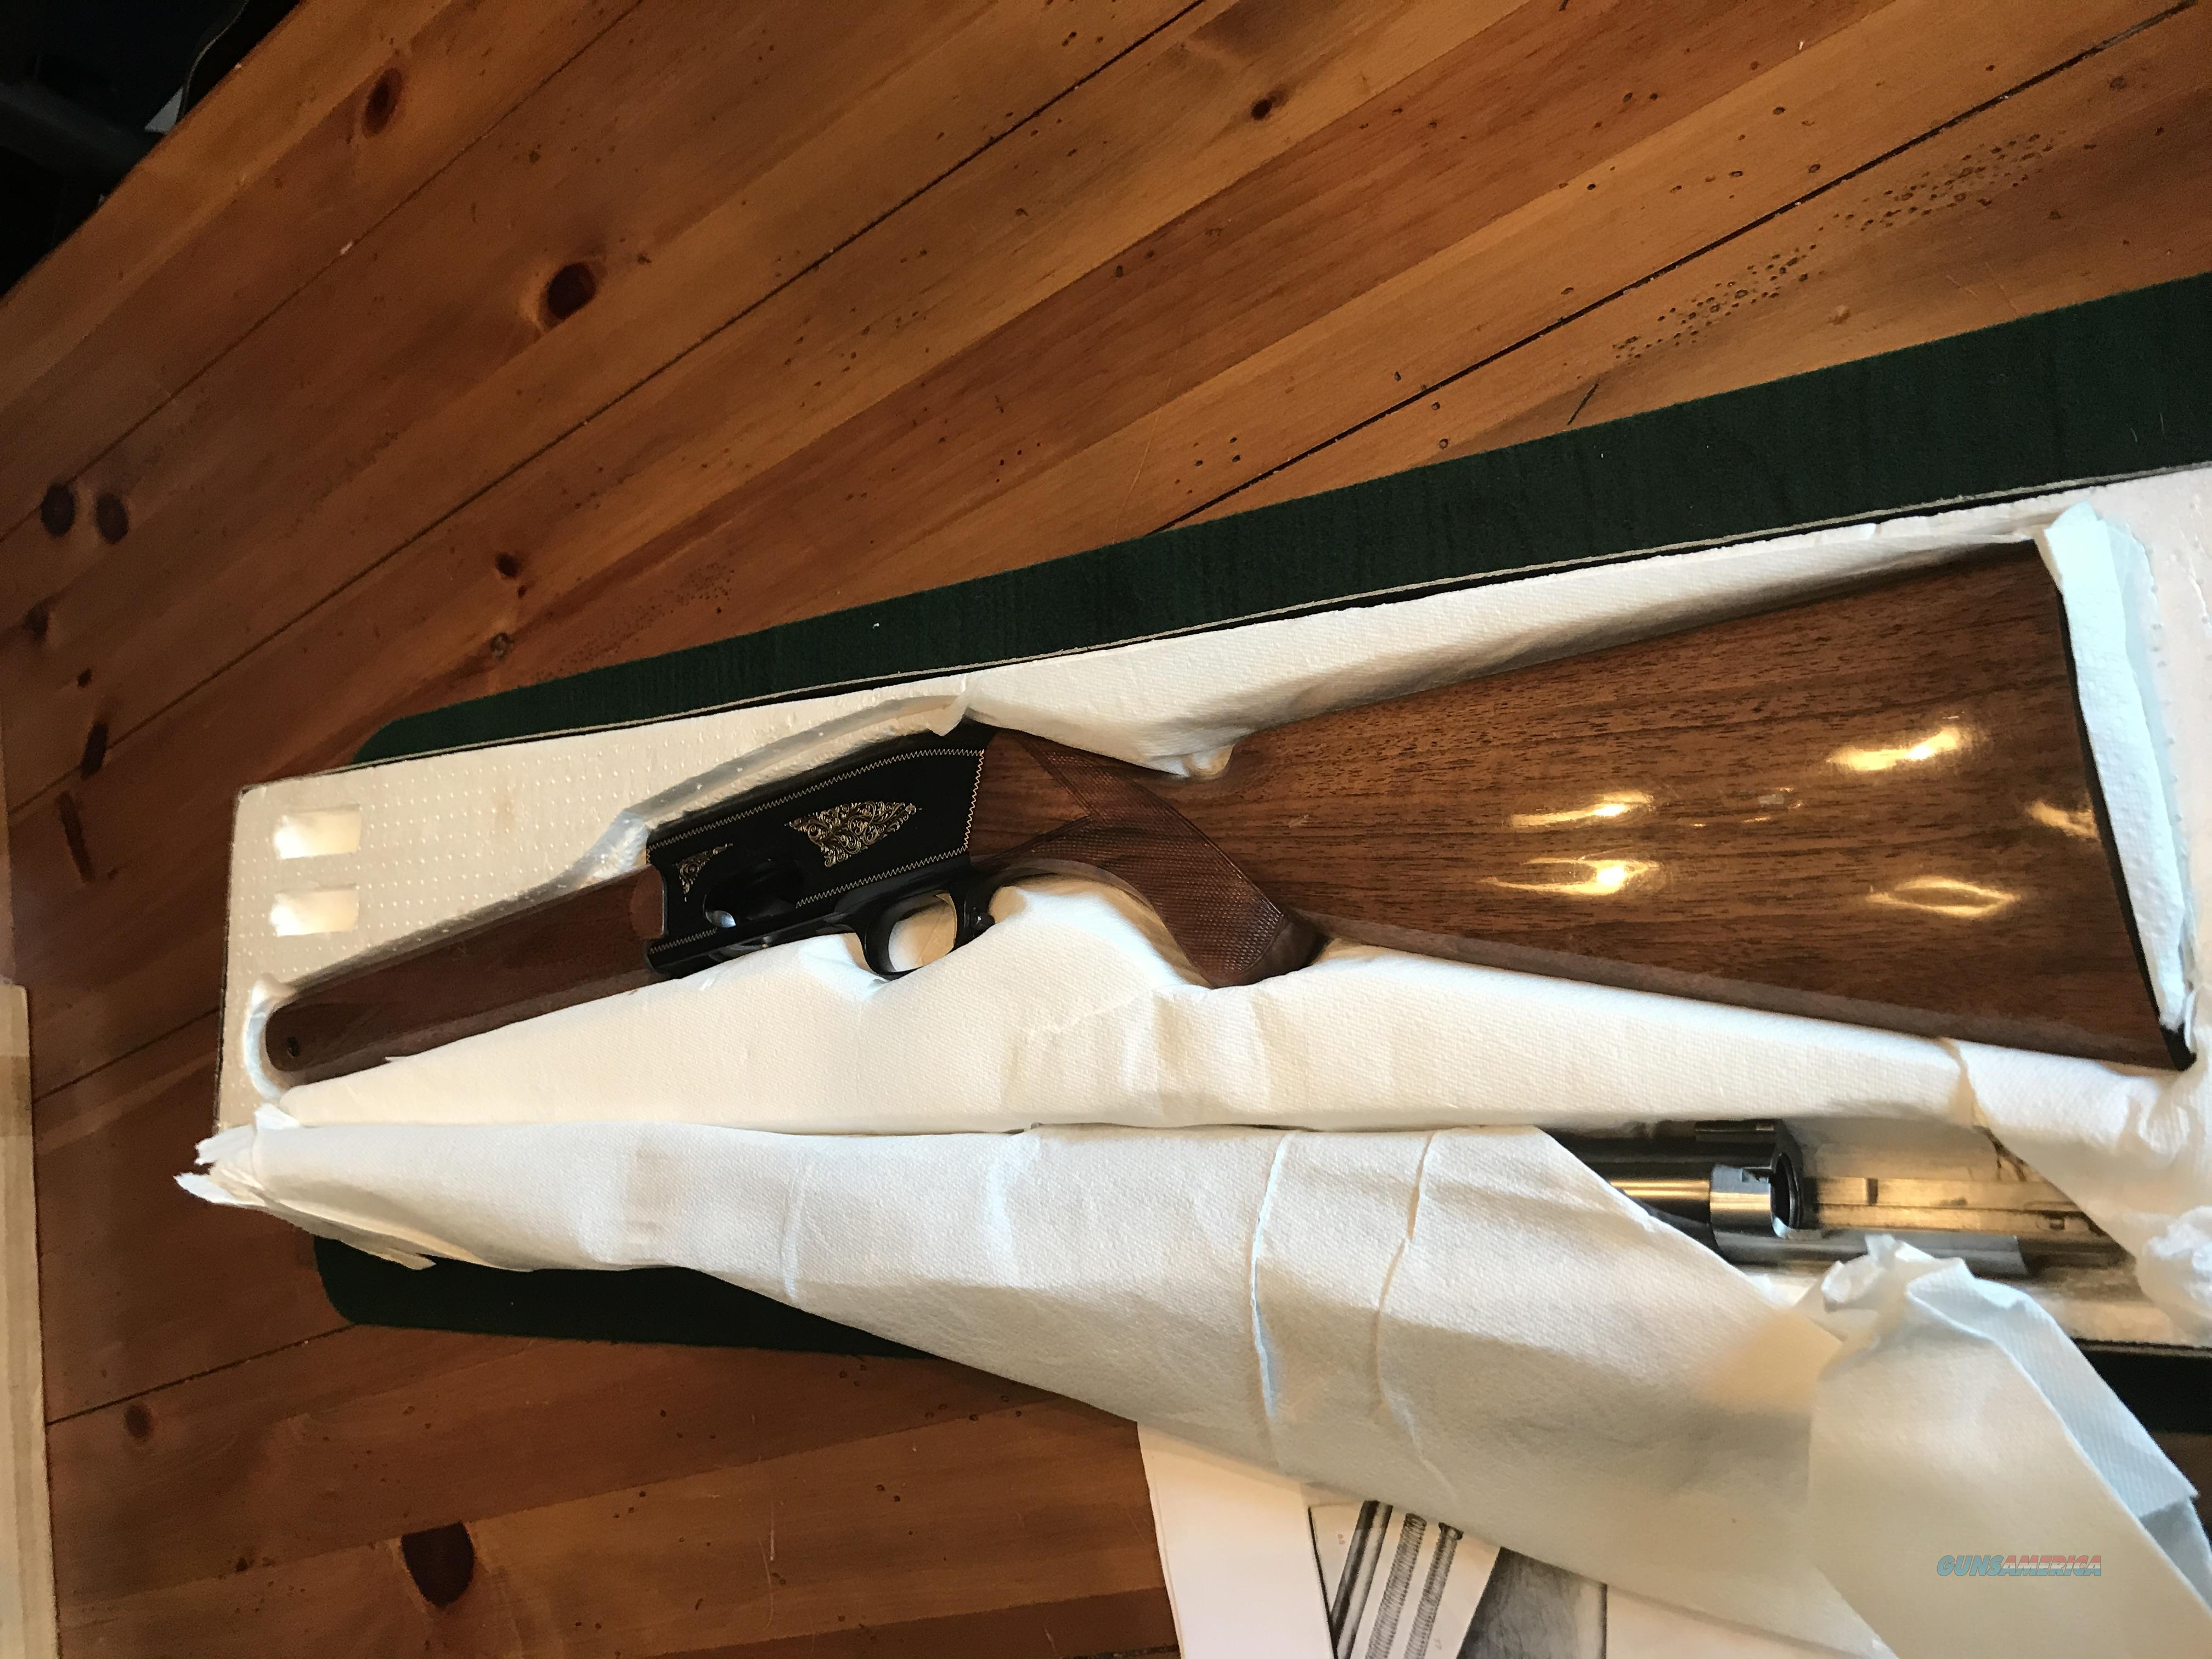 Browning Double Auto - Twelvette - 1965 - In Box - Matching Serial # - VR Full Choke  Guns > Shotguns > Browning Shotguns > Autoloaders > Hunting